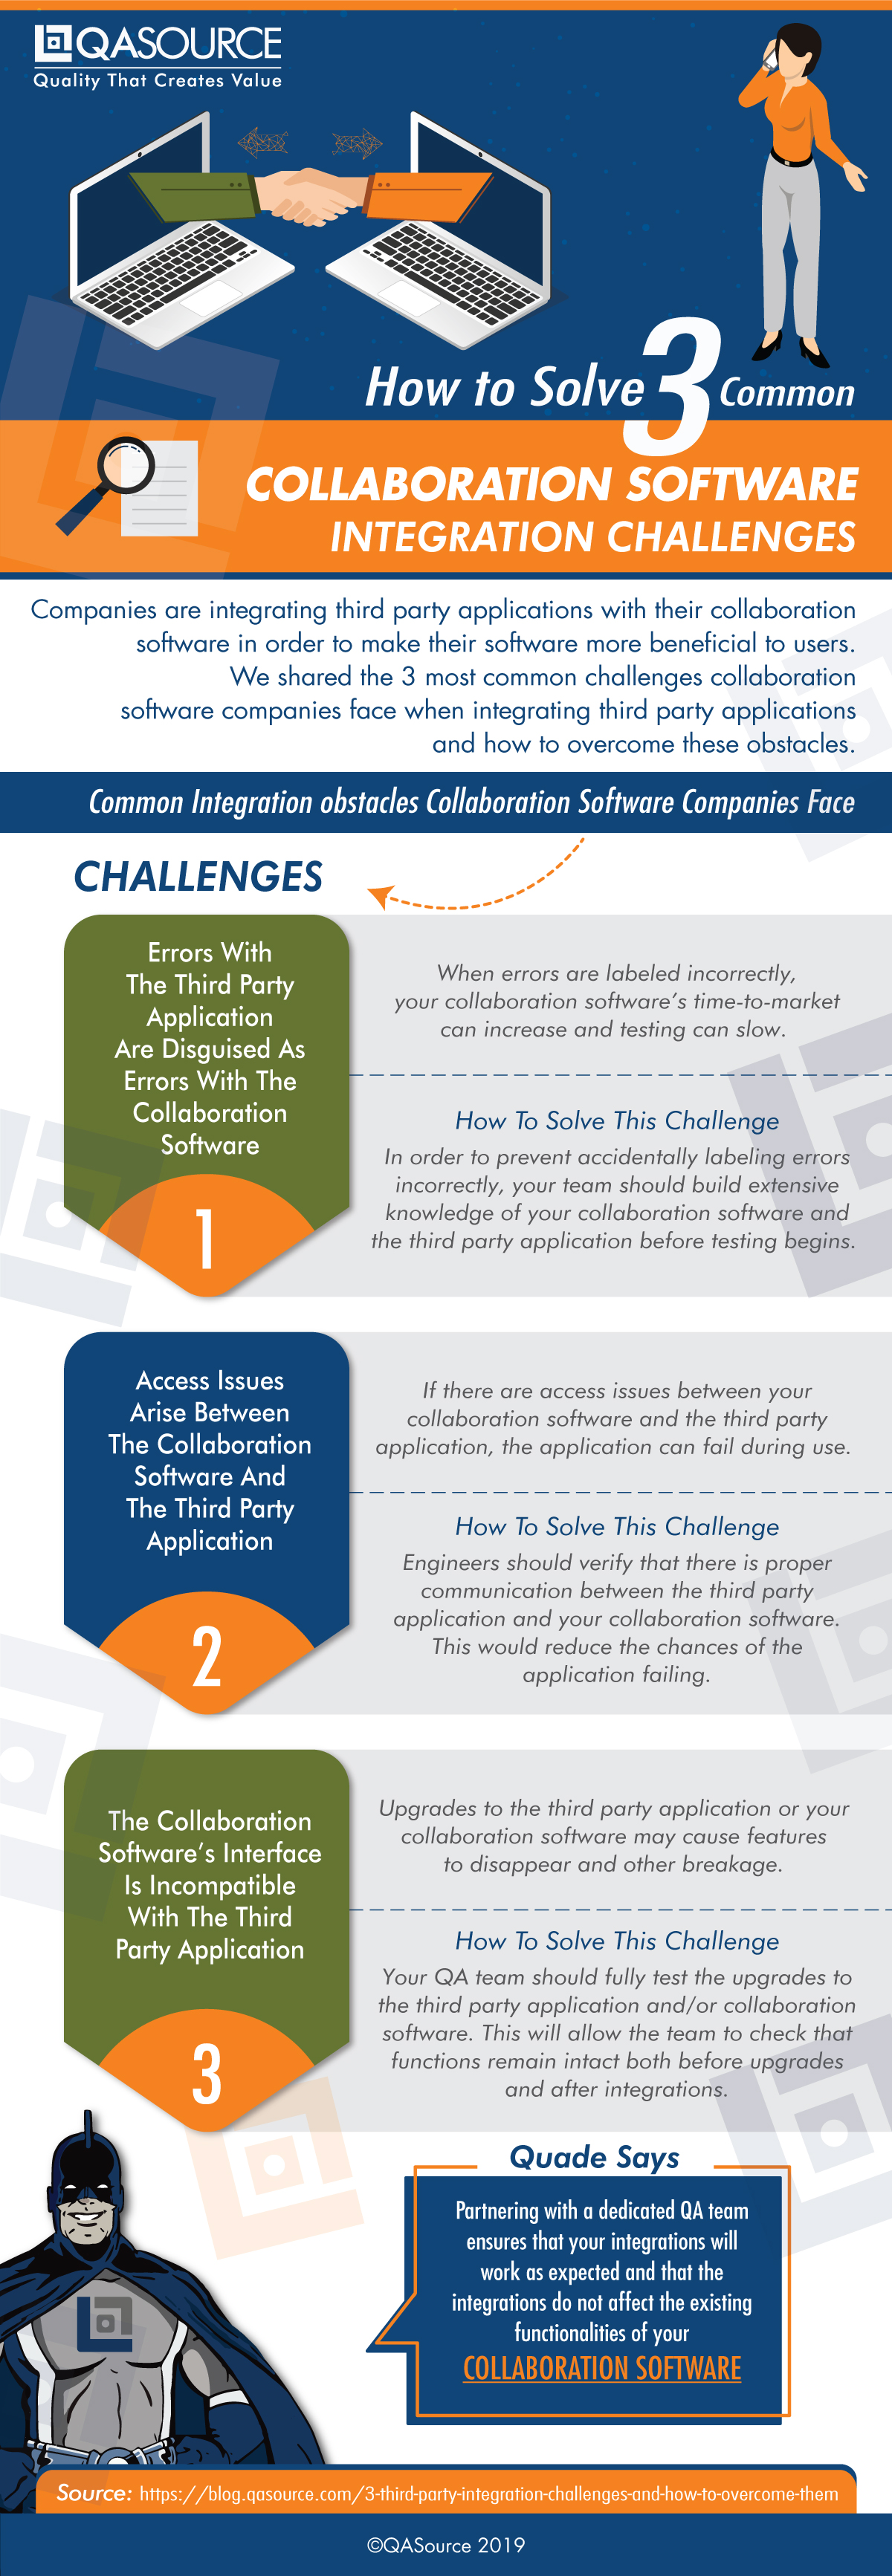 How to Solve 3 Common Collaboration Software Integration Challenges (Infographic)